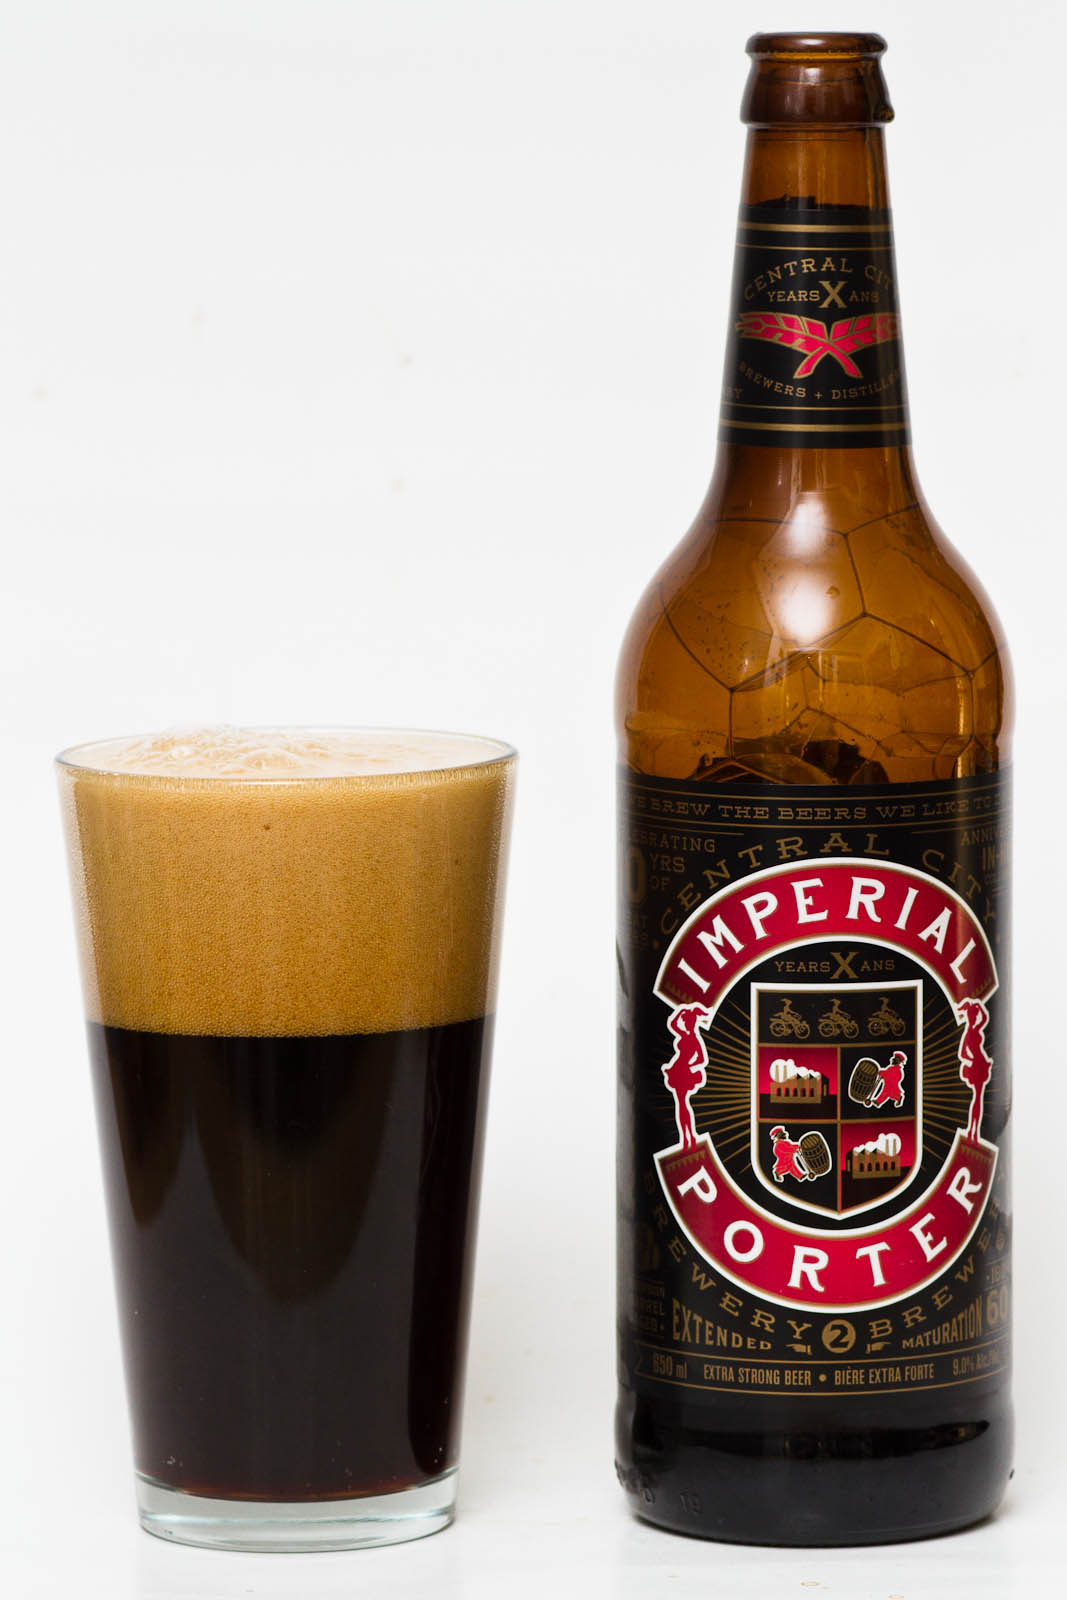 Le Meilleur Central City Brewery – 10Th Anniversary Imperial Porter Ce Mois Ci